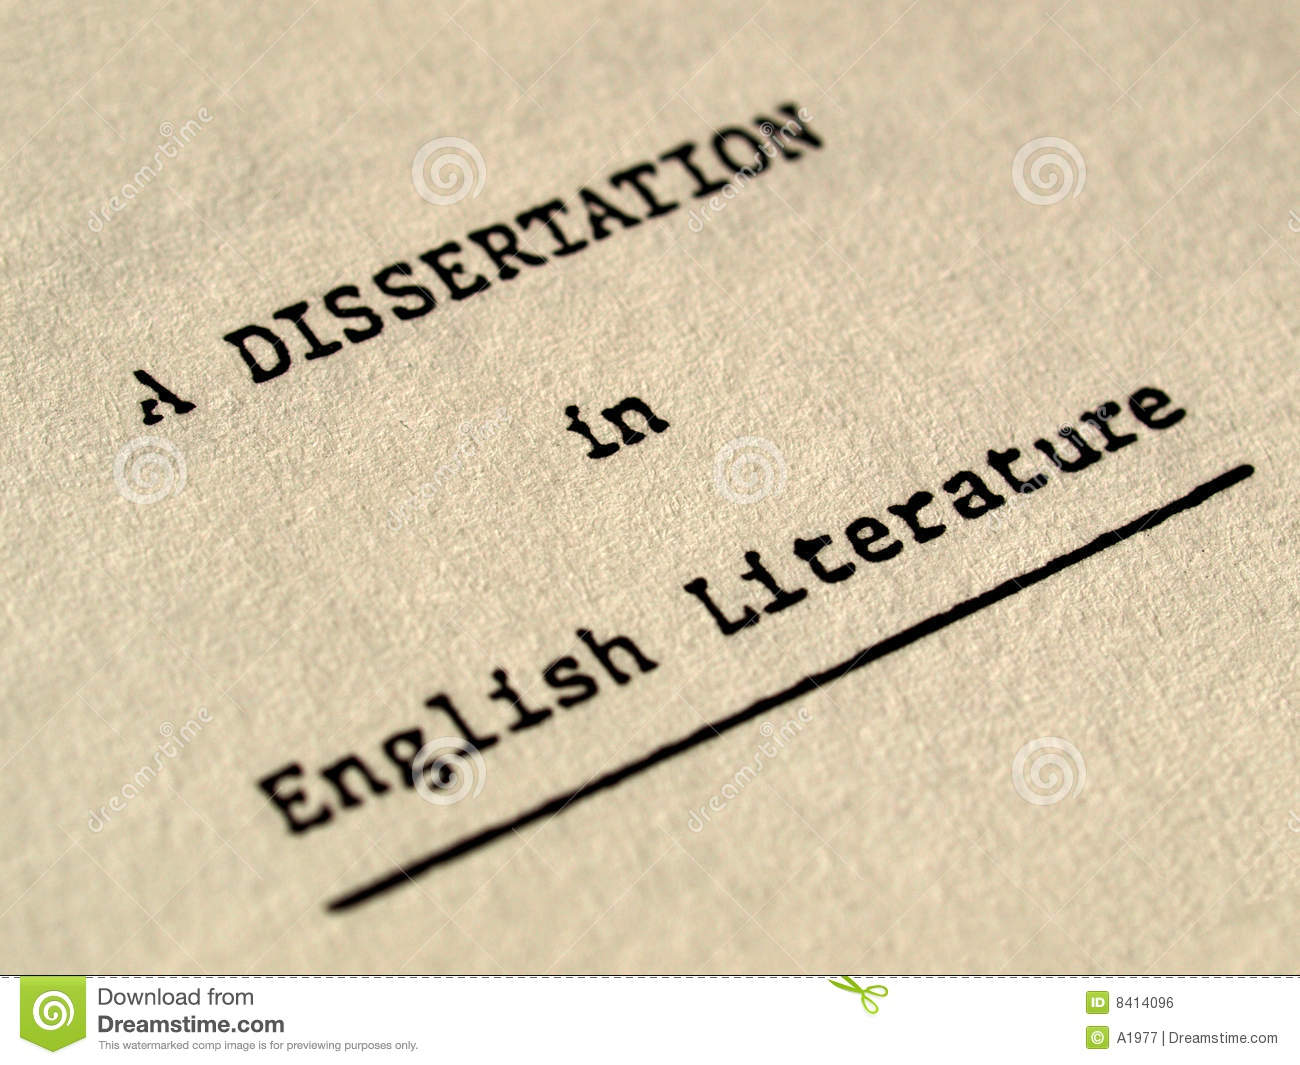 english literature dissertation abstract English literature dissertation titles a great selection of free english literature dissertation titles and ideas to help you write the perfect dissertation.